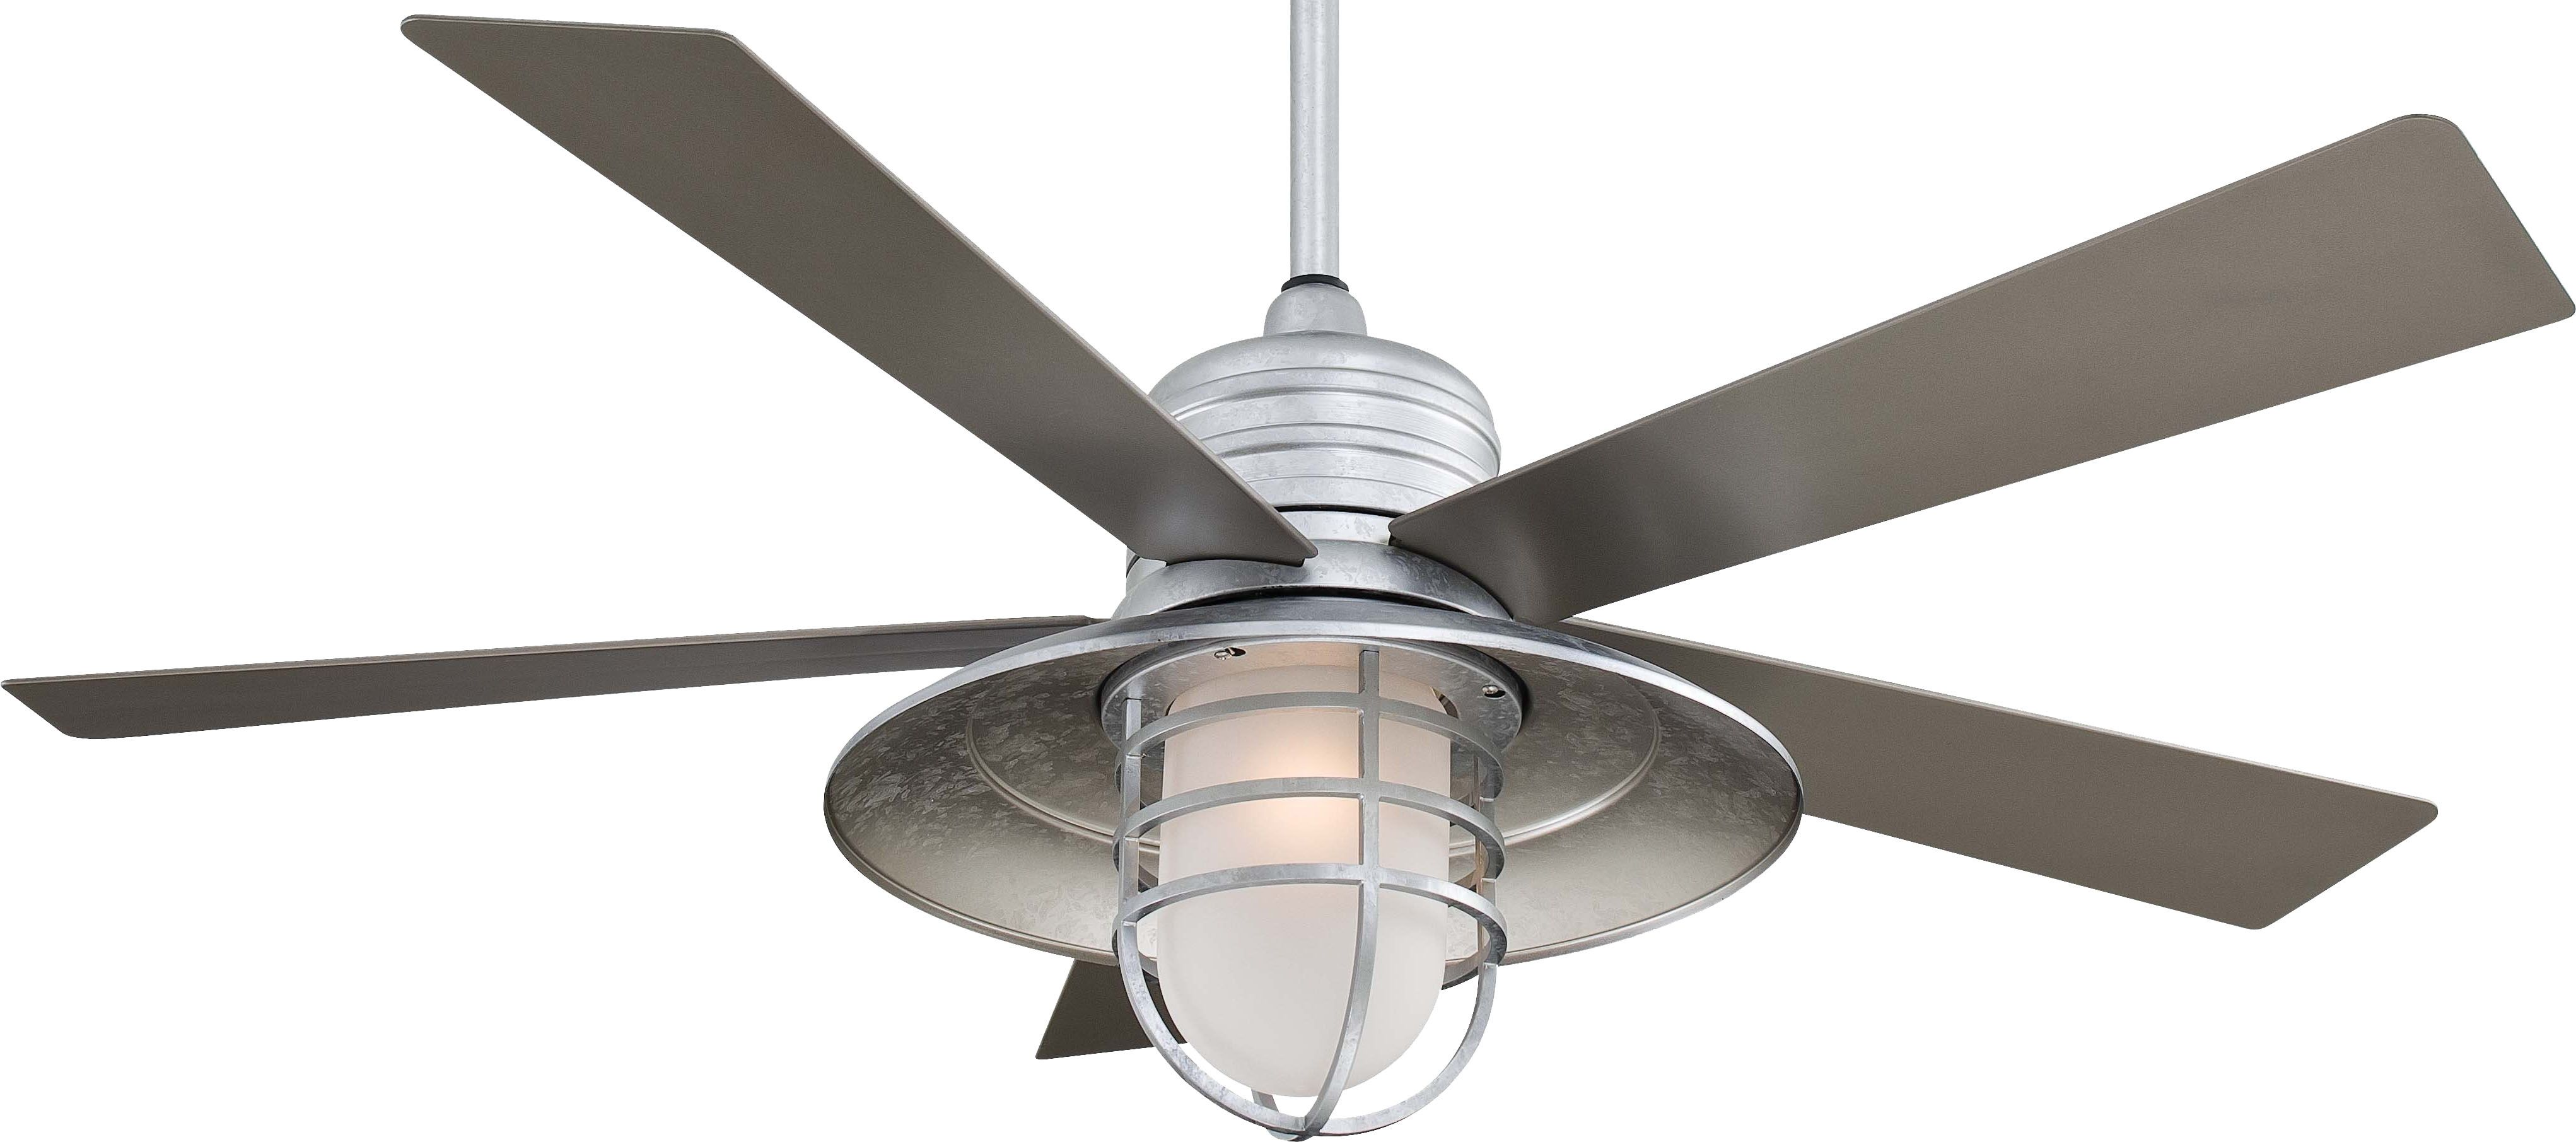 Large Indoor Fans Extra Large Industrial Ceiling Fans Home House Decor Outdoor